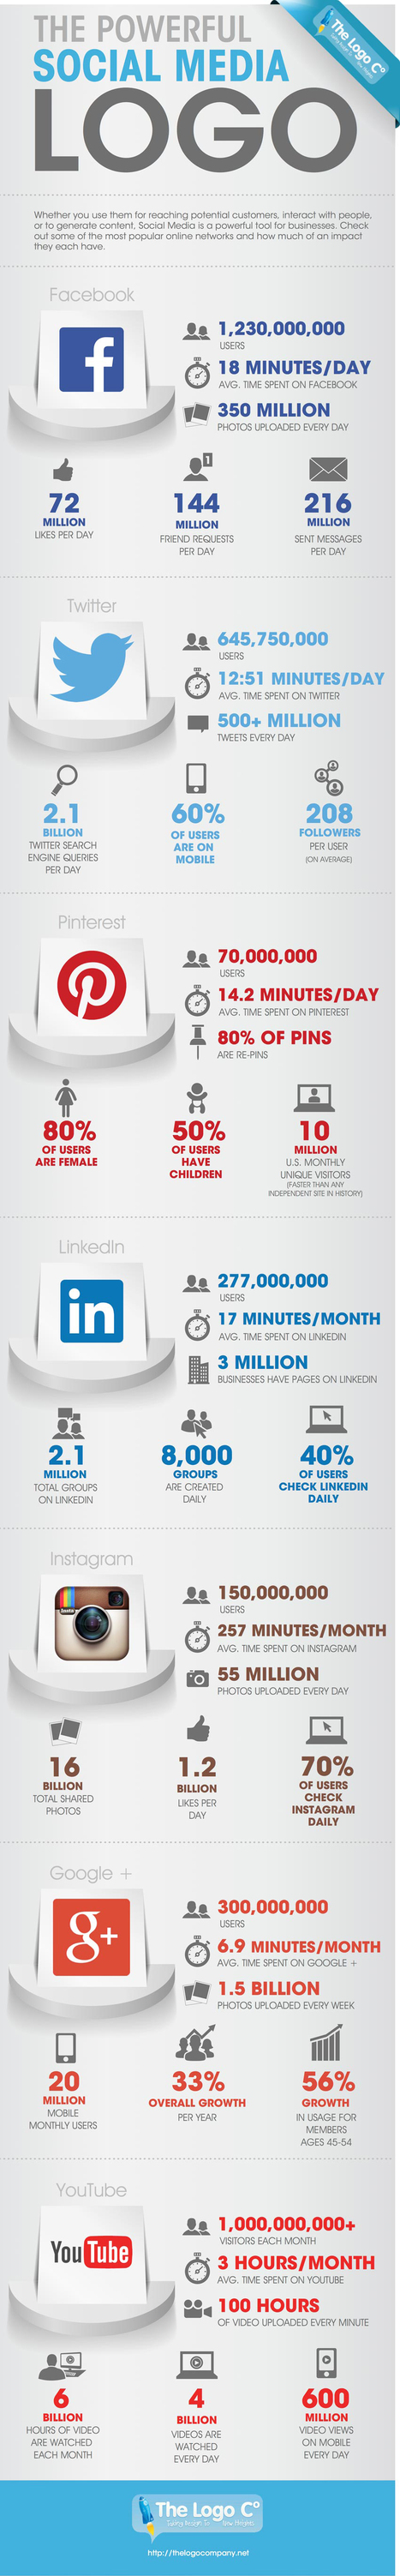 2014: The Numbers Behind Social Media [infographic] | Ice Cool Infographics | Scoop.it